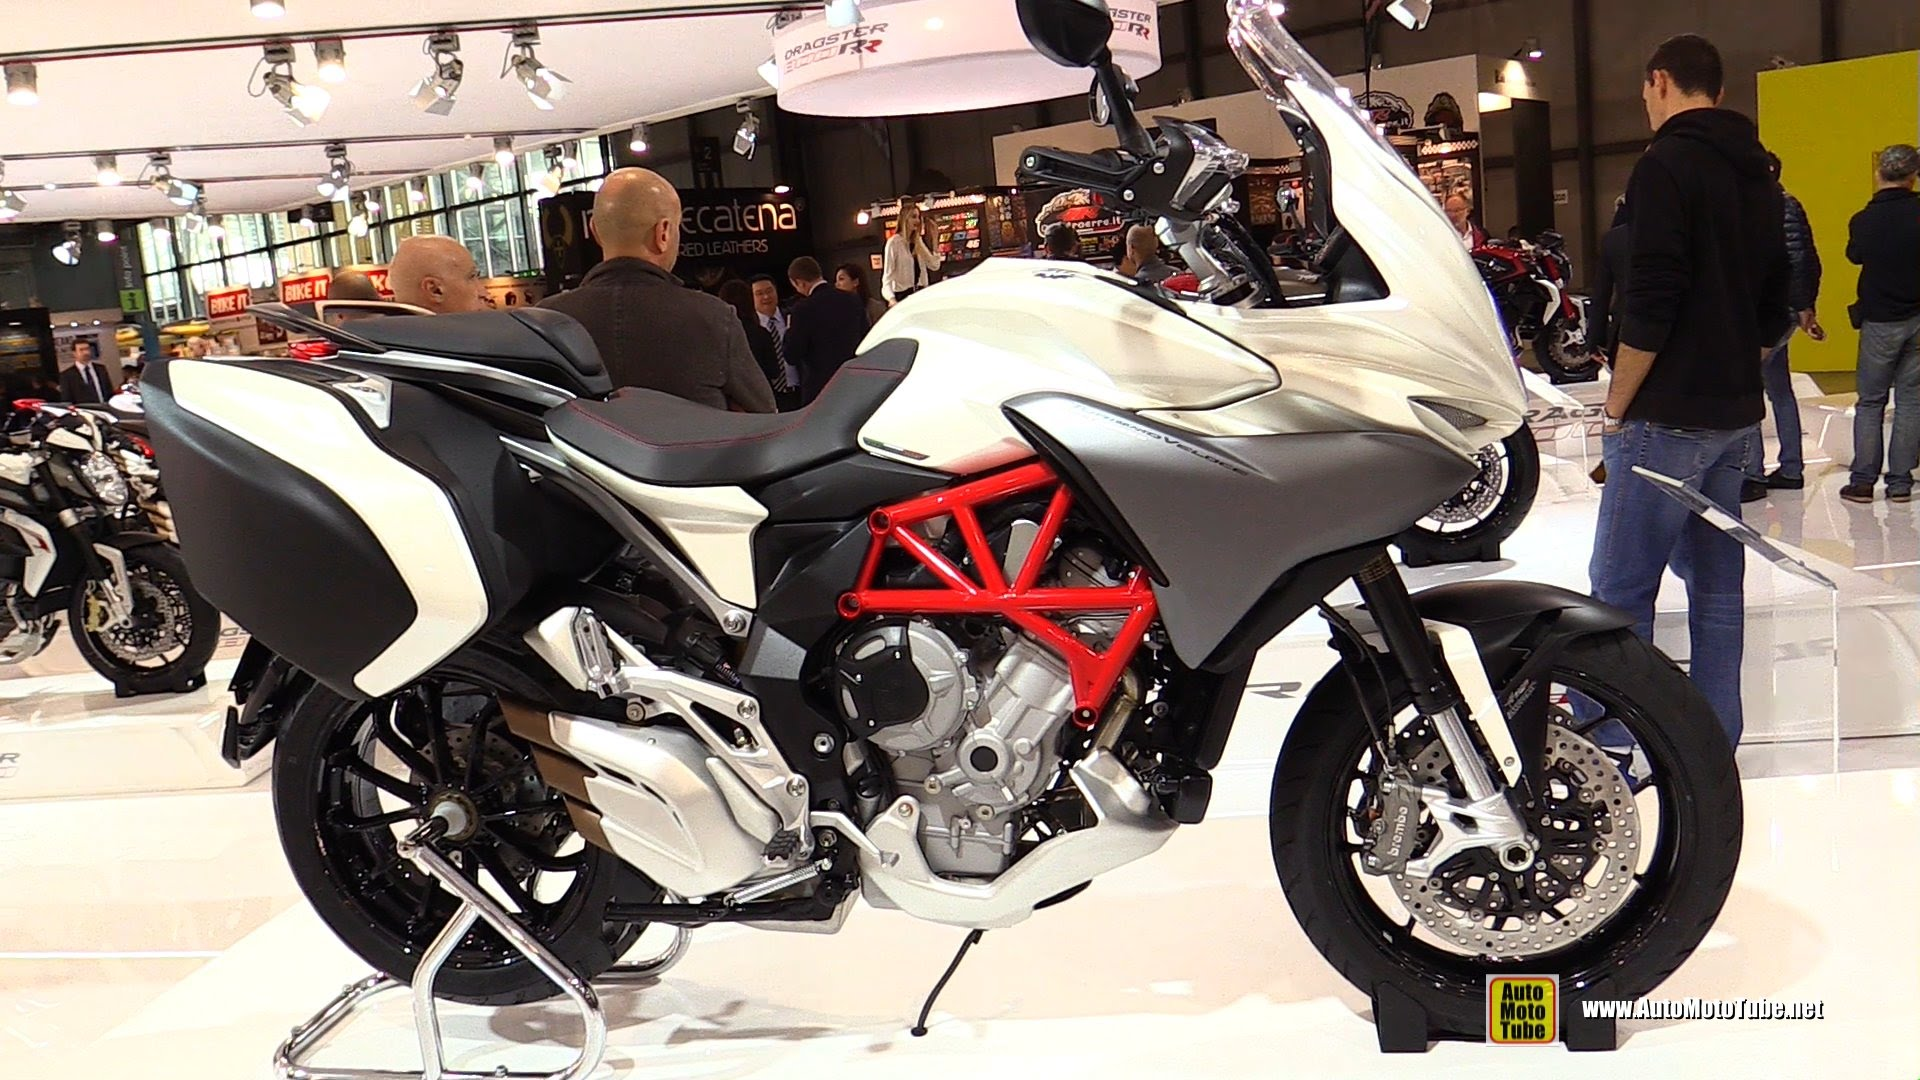 MV Agusta TurismoVeloce Lusso 800 2013 images #117203